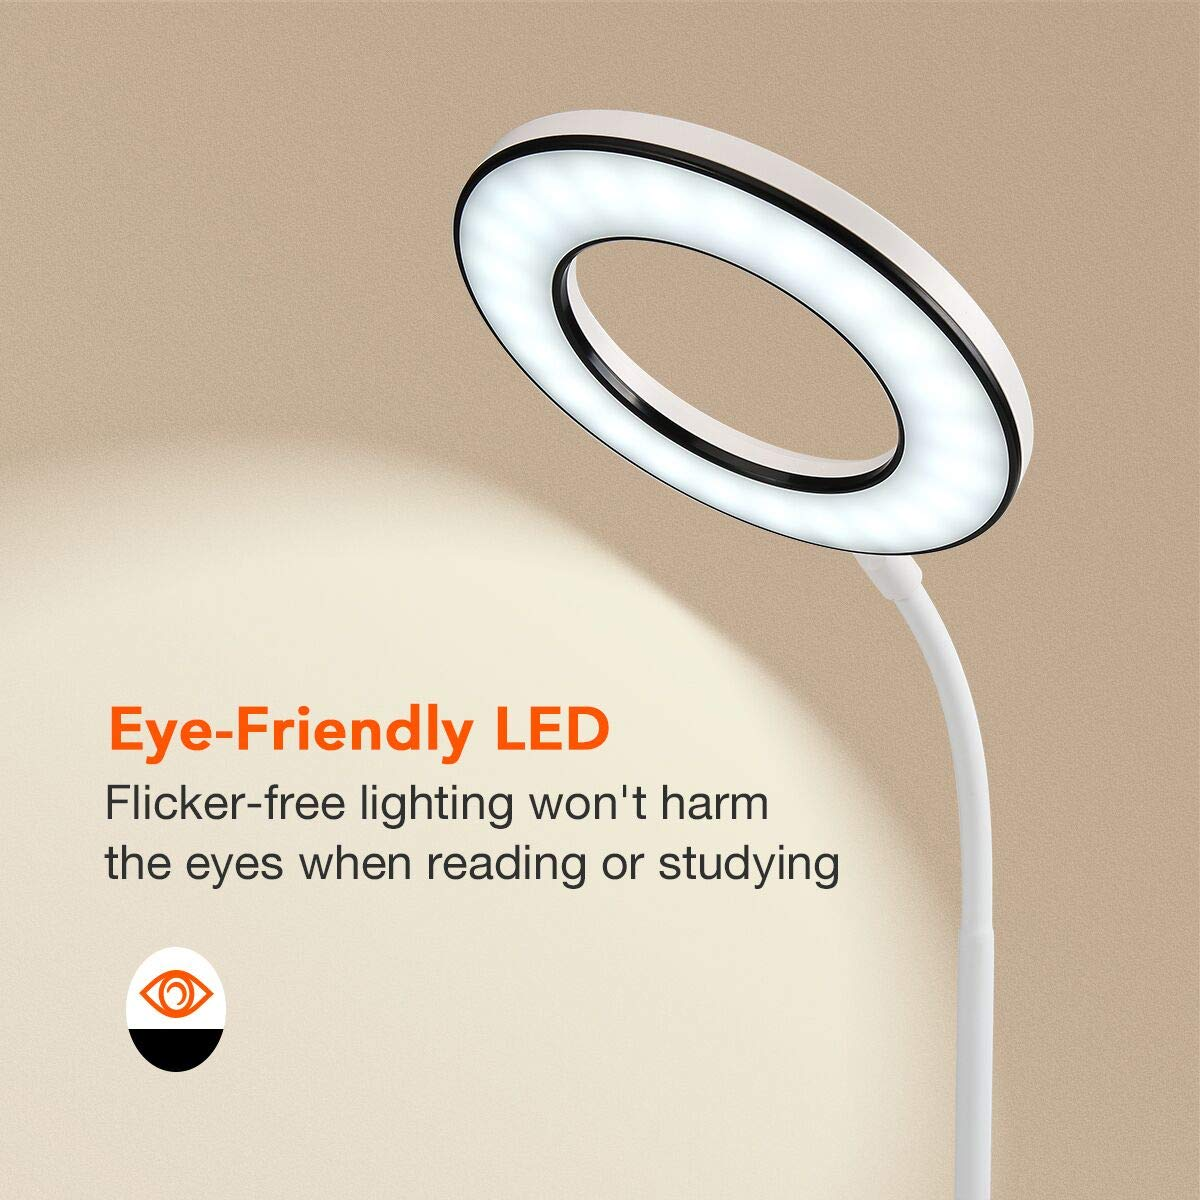 Miady LED Desk Lamp Eye-Caring Table Lamp, 3 Color Modes with 4 Levels of Brightness, Dimmable Office Lamp with Adapter, Touch Control Sensitive, 360° Flexible by Miady (Image #3)